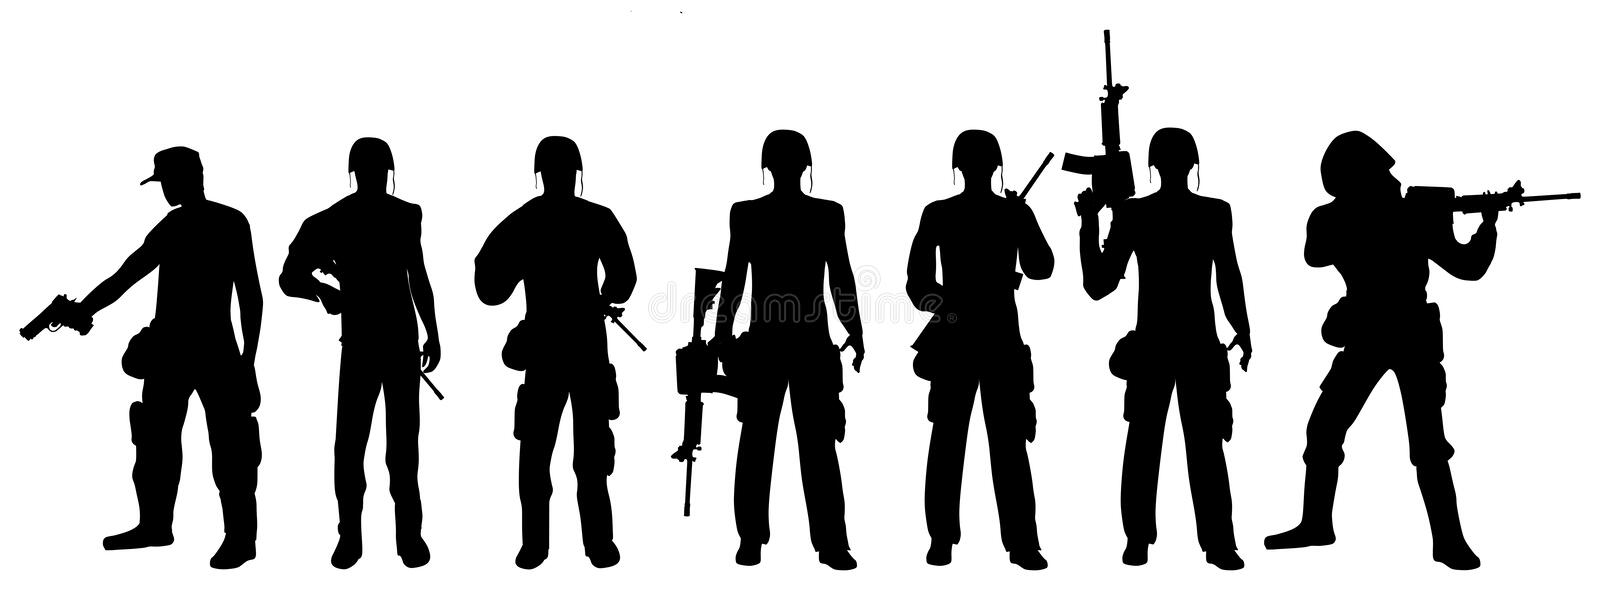 Download Army 2 stock illustration. Image of black, decoration - 21177632